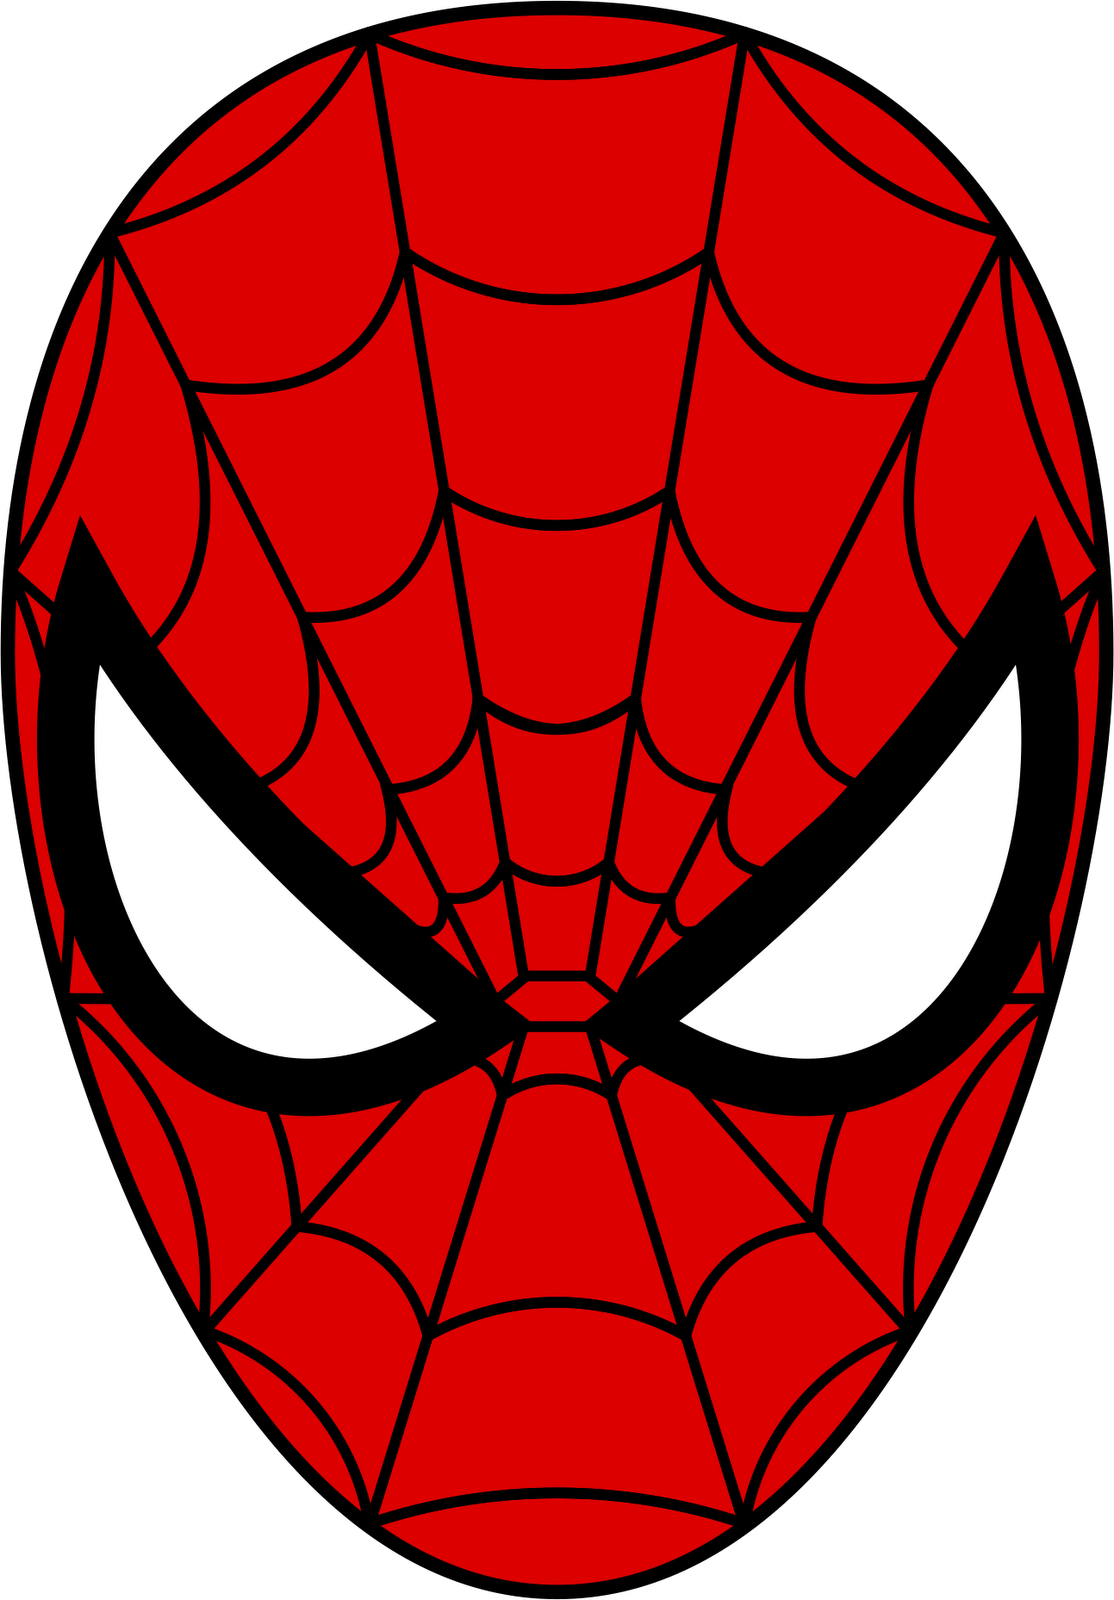 Spiderman face png. Spider man mask from